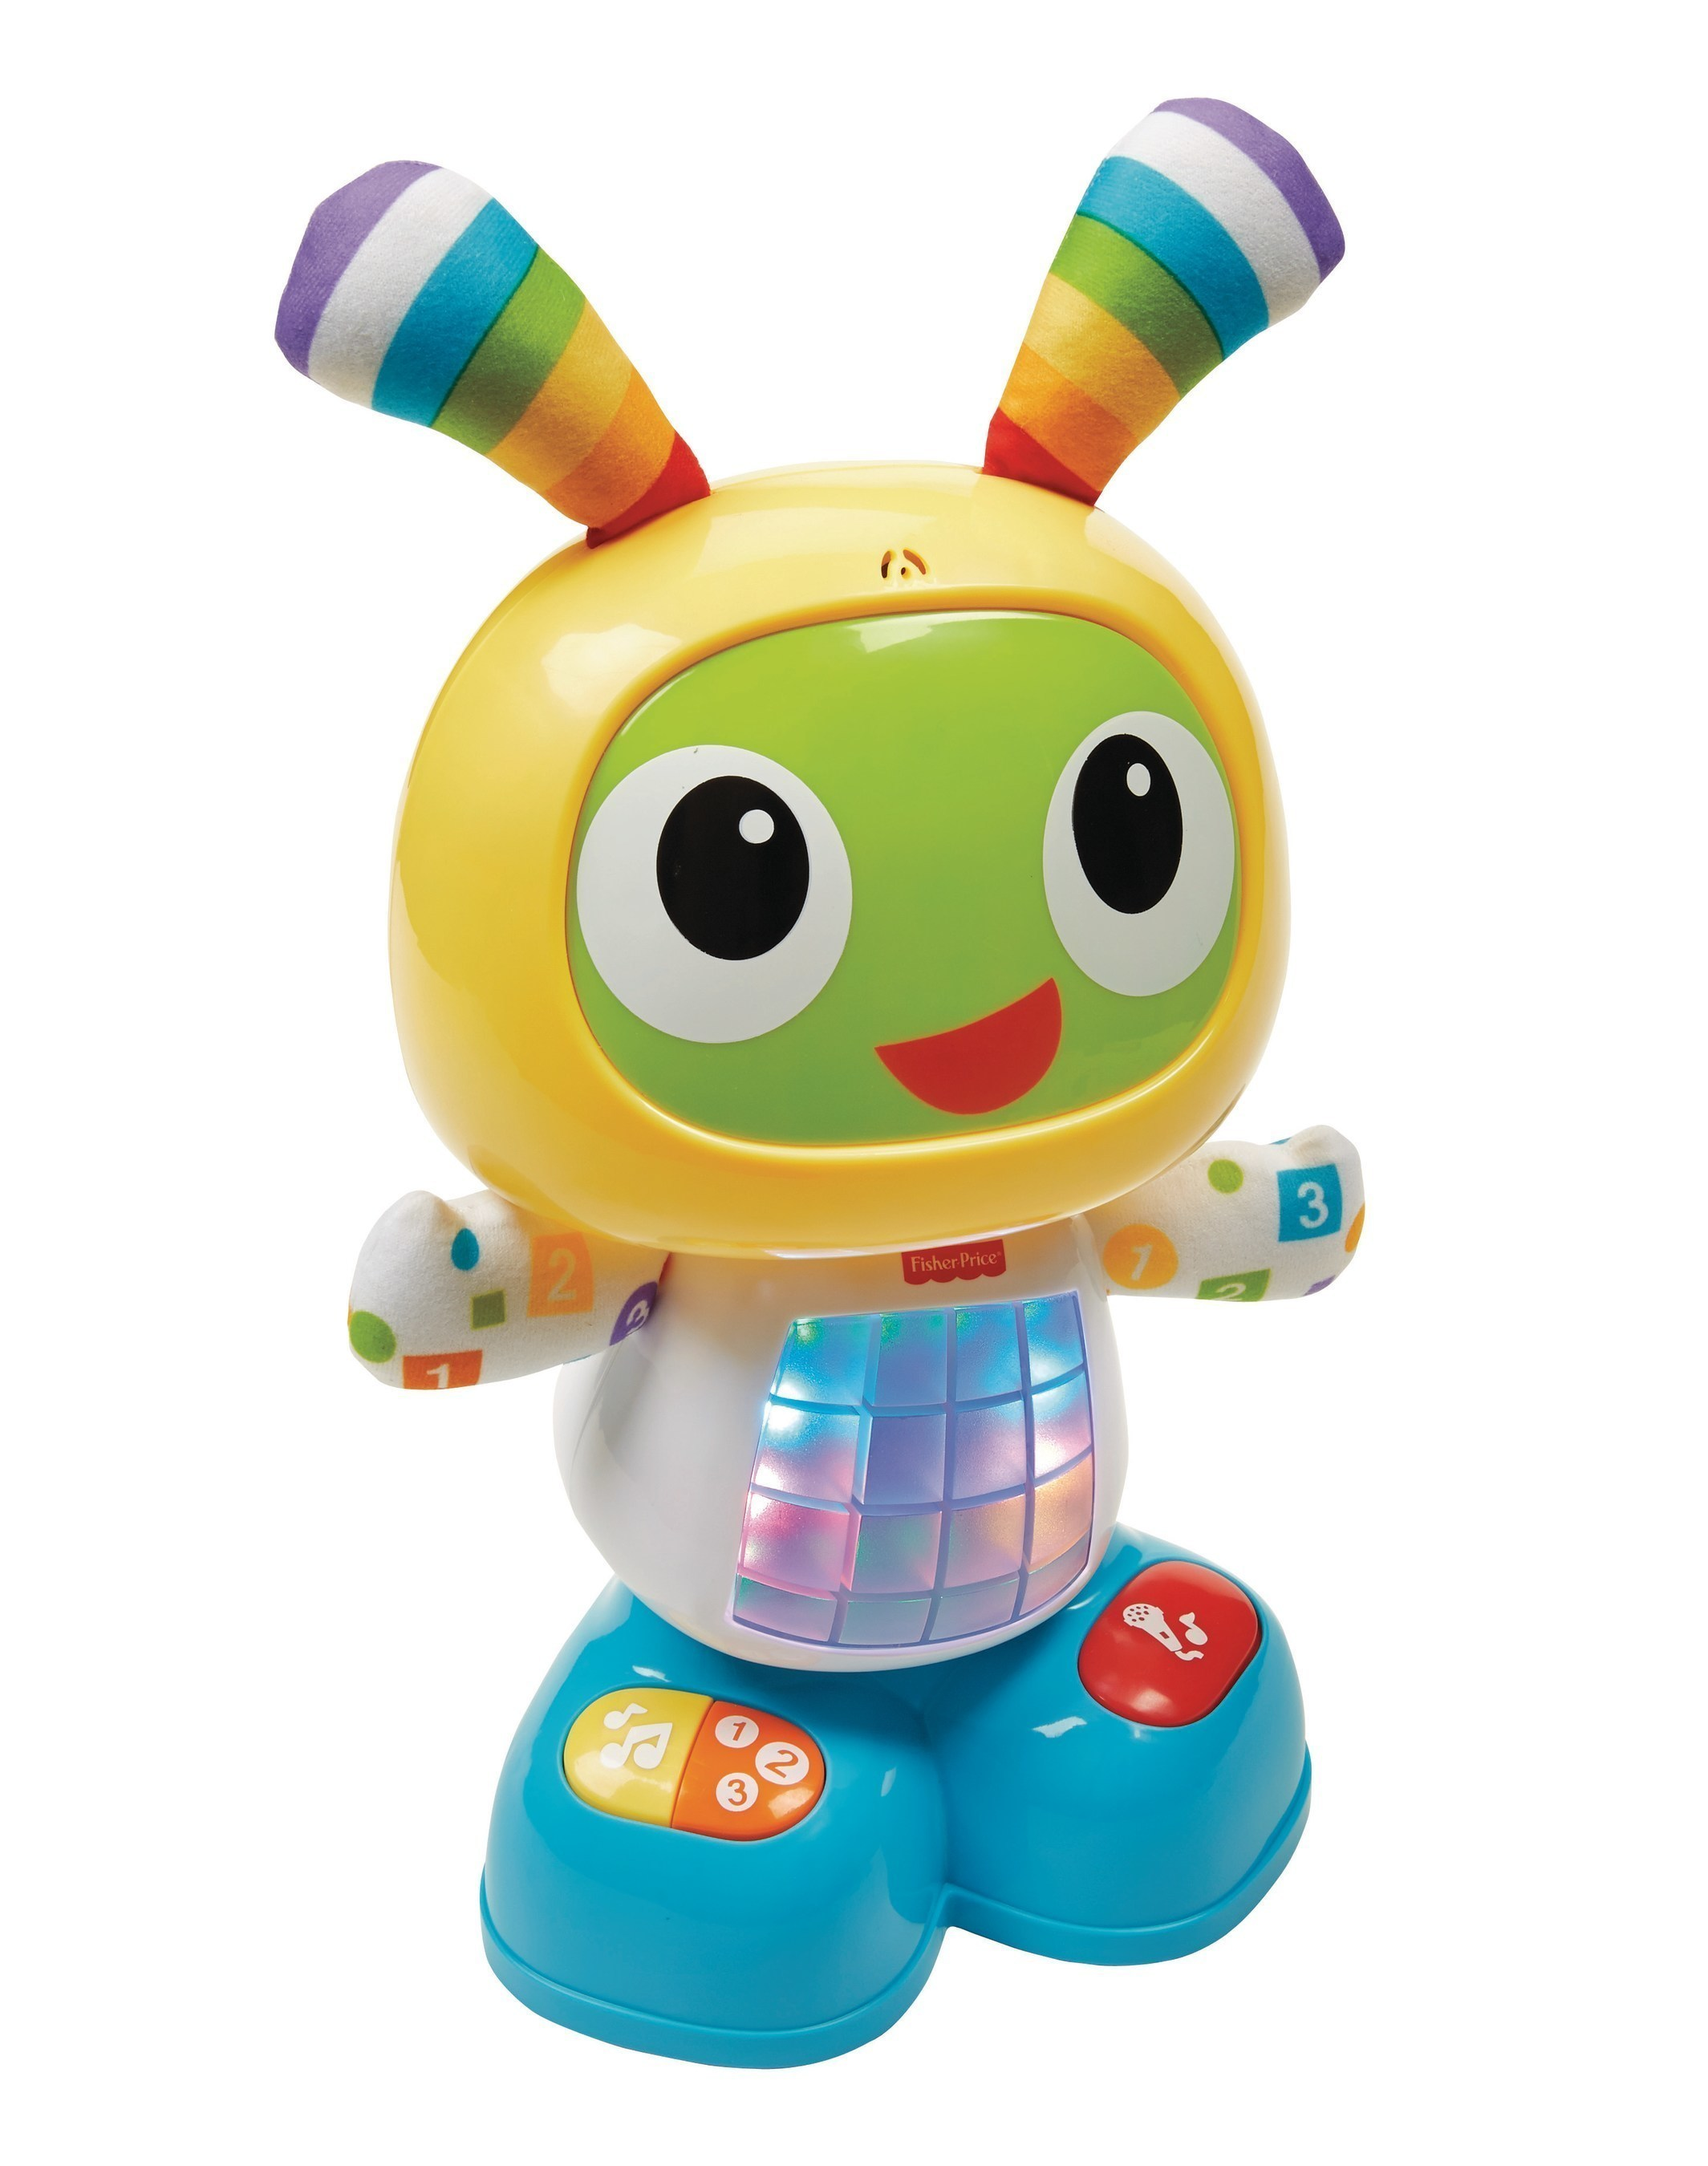 Mattel Wins Toy Of The Year Award For The Fisher Price Bright Beats